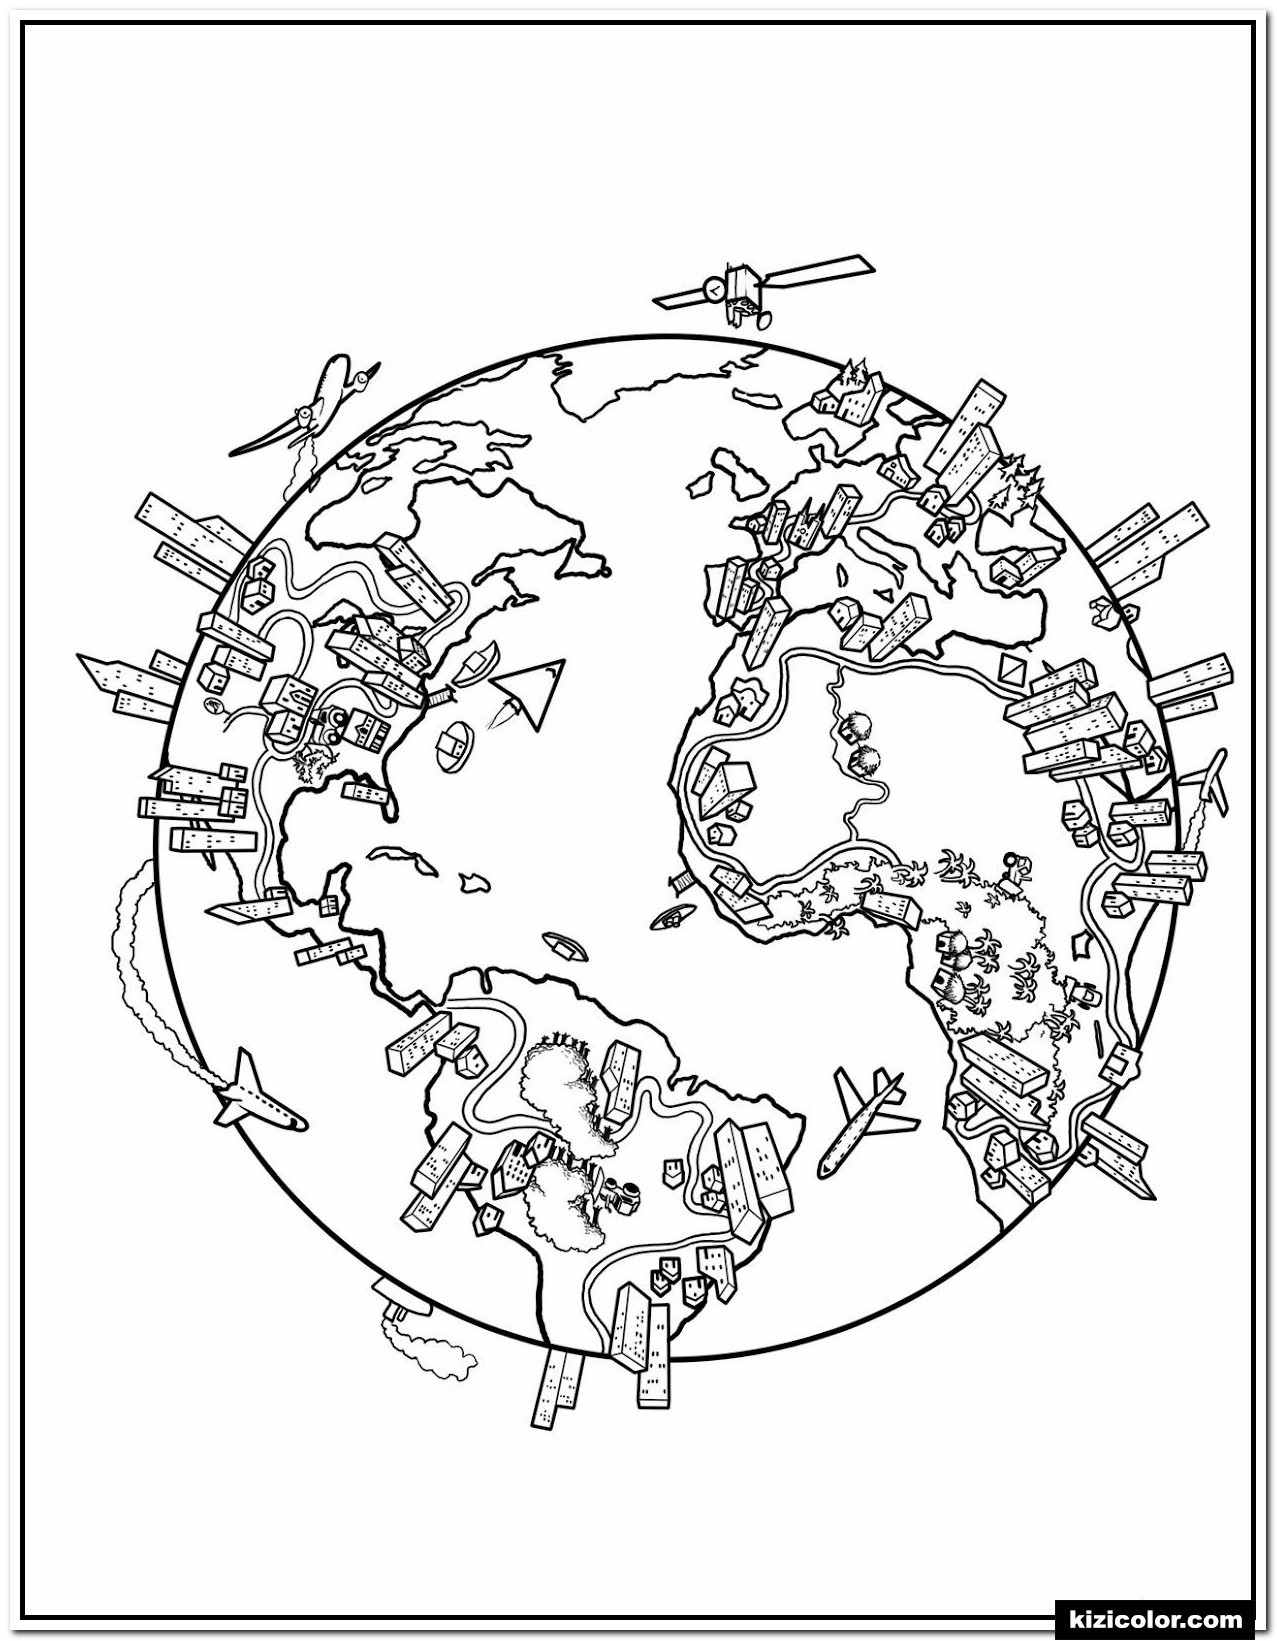 Continents and Oceans Printable Worksheets Coloring Worldp Printable Earth Pages Kizi Free for Amazing